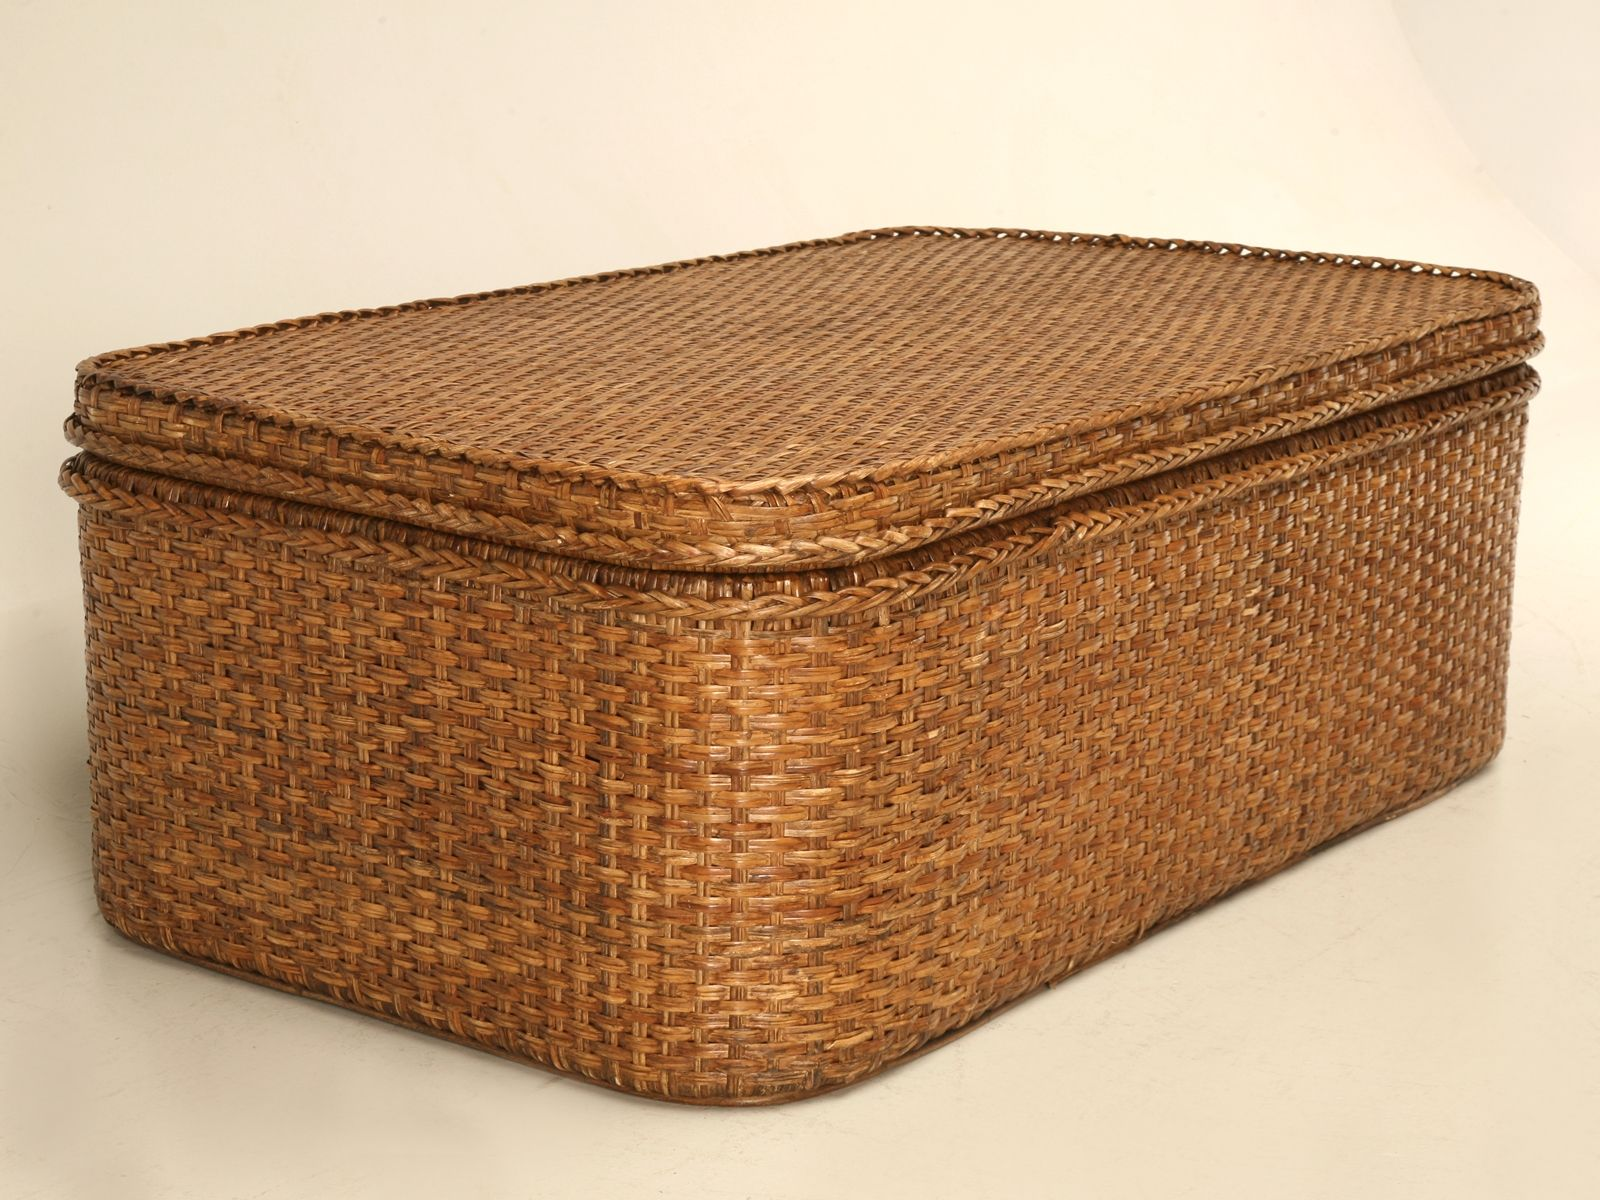 Rattan Rollo Square Wicker Trunk Coffee Table Http Therapybychance